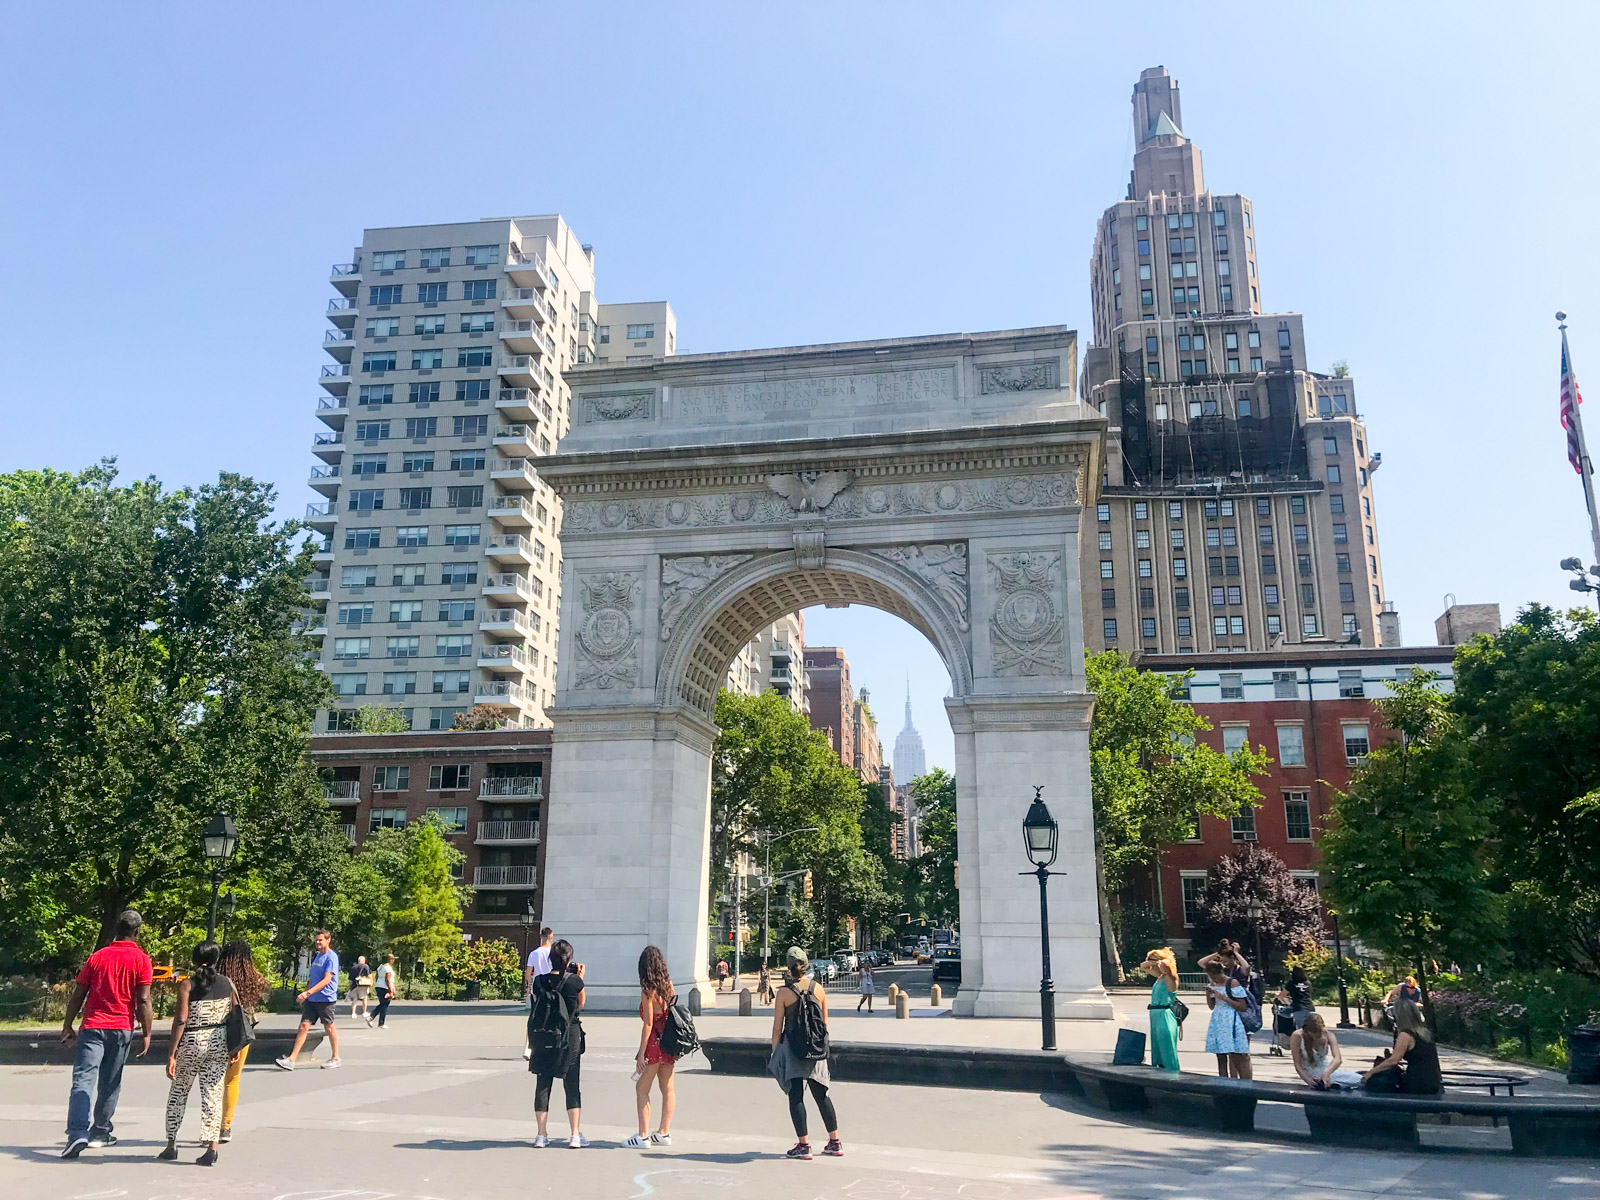 The Washington Square Park arch during the daytime. In the distance, the tall Empire State building can be seen through the arch.